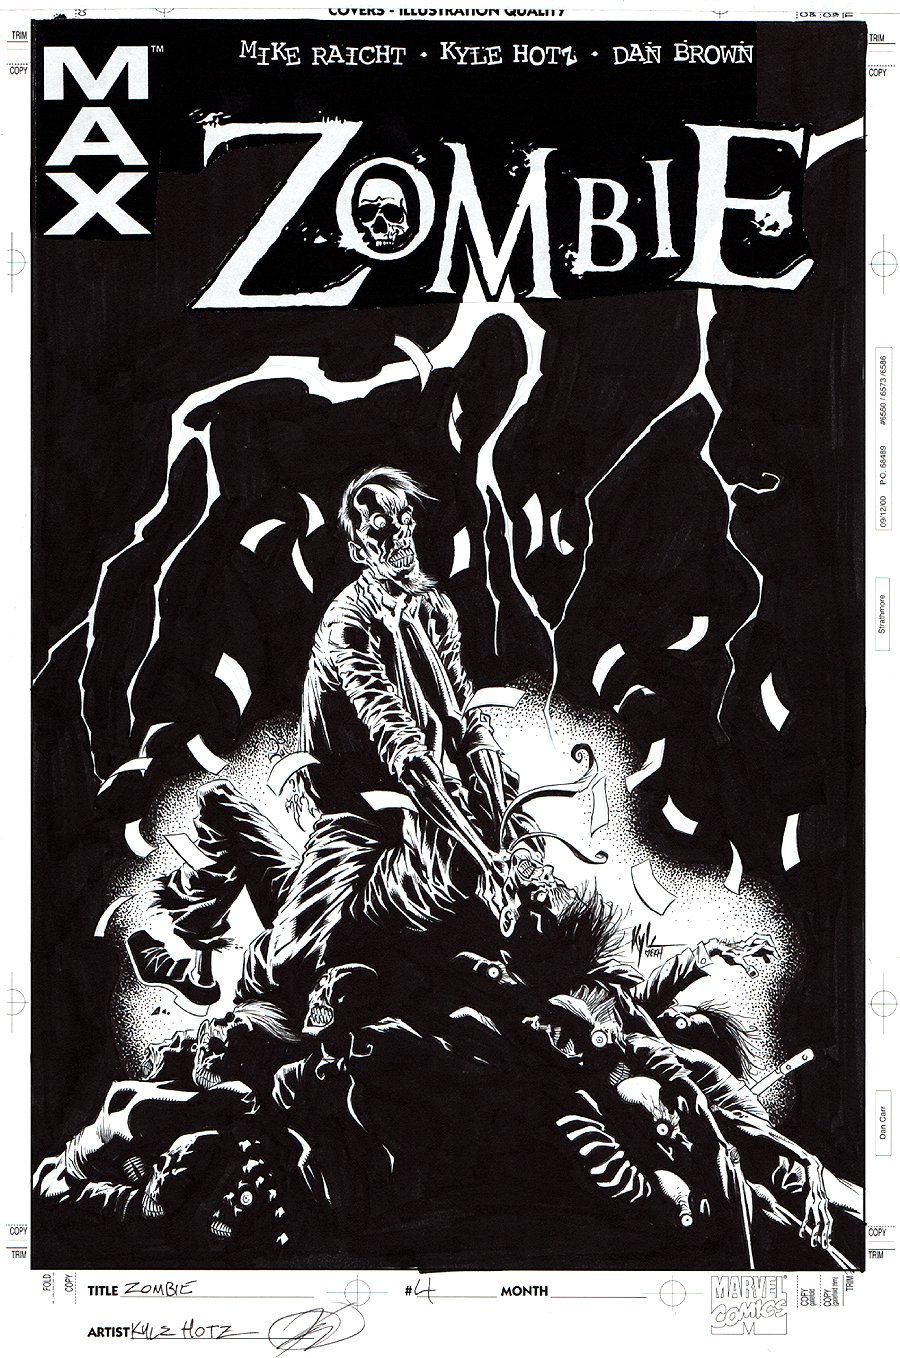 Zombie #4 Cover (2006)